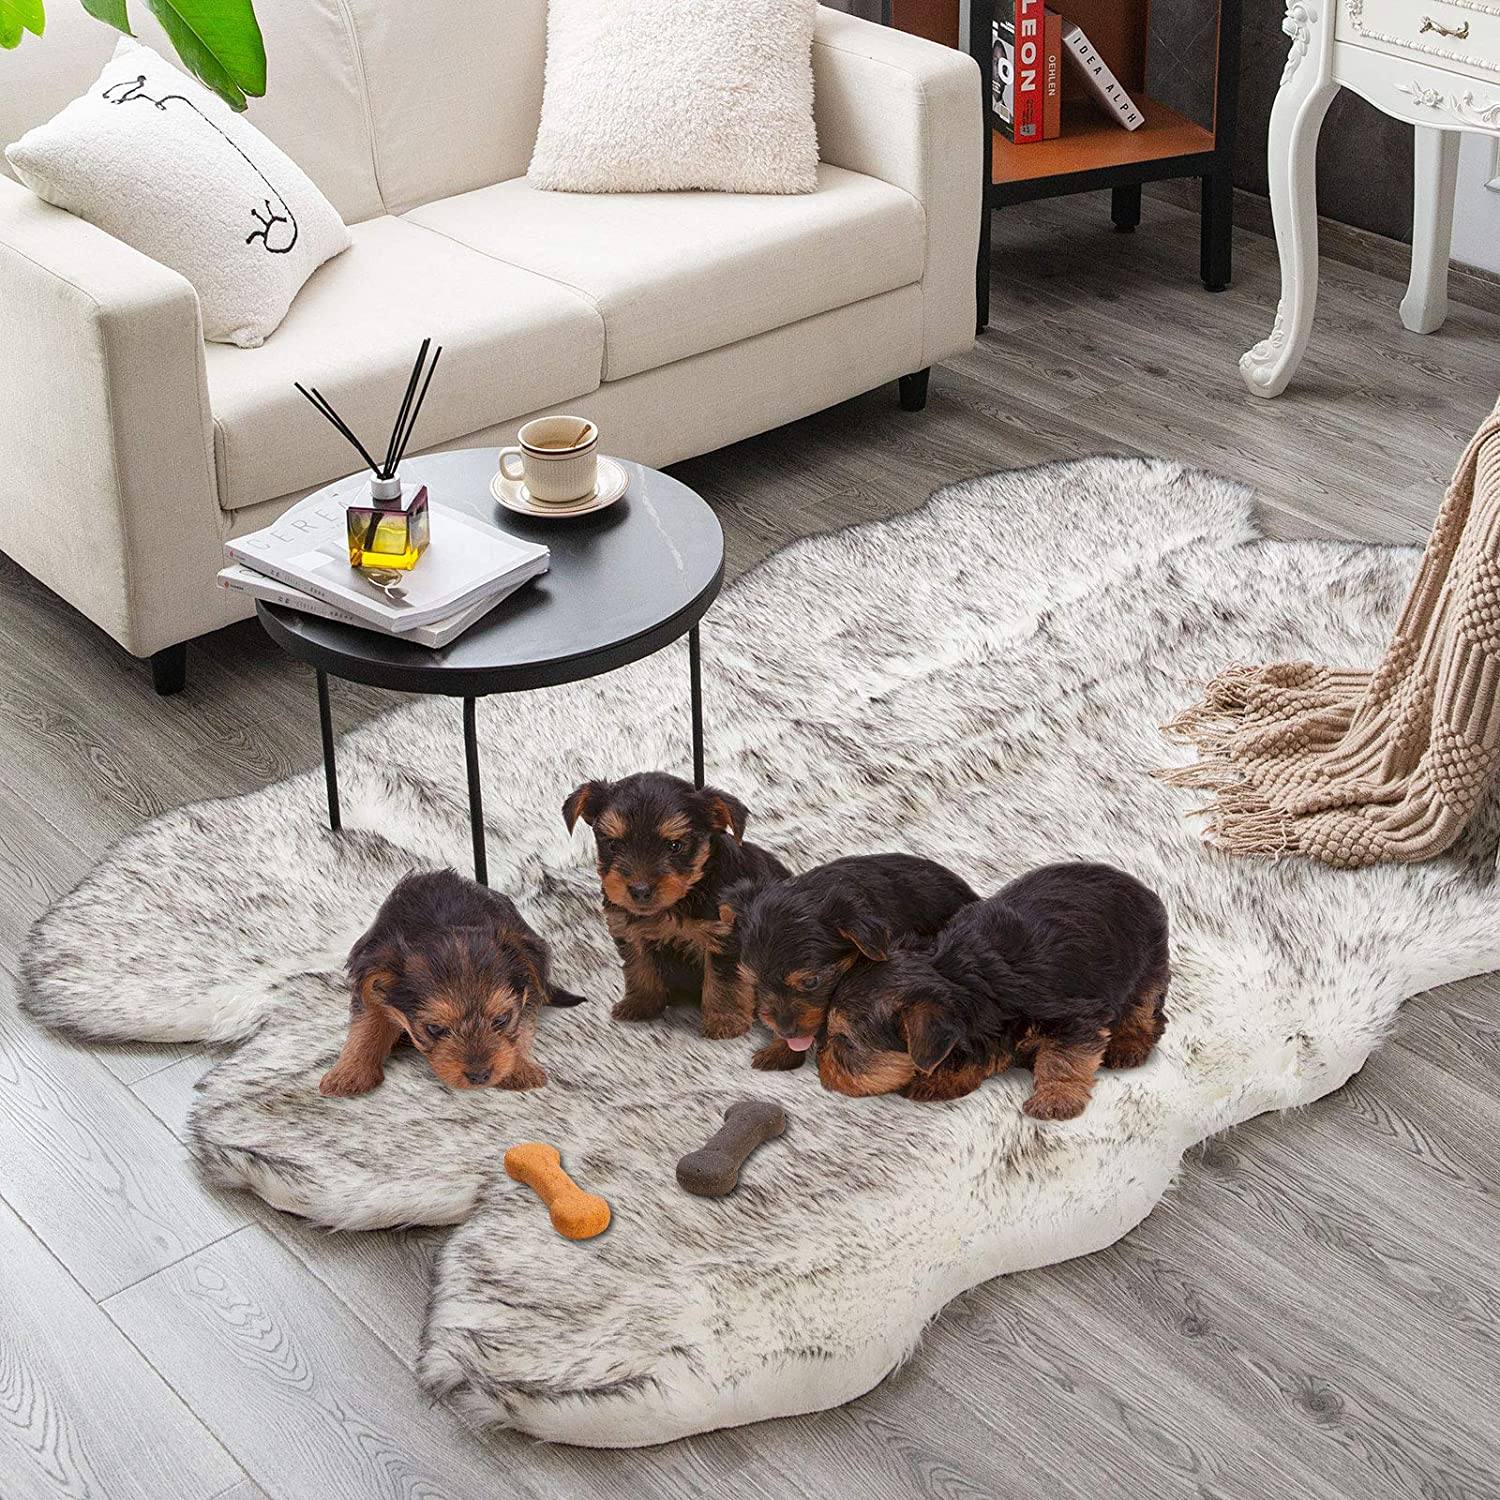 Carvapet Soft Fluffy Super Special SALE held Rugs Faux Fur San Antonio Mall Rug Area Sheepskin Bedroo for